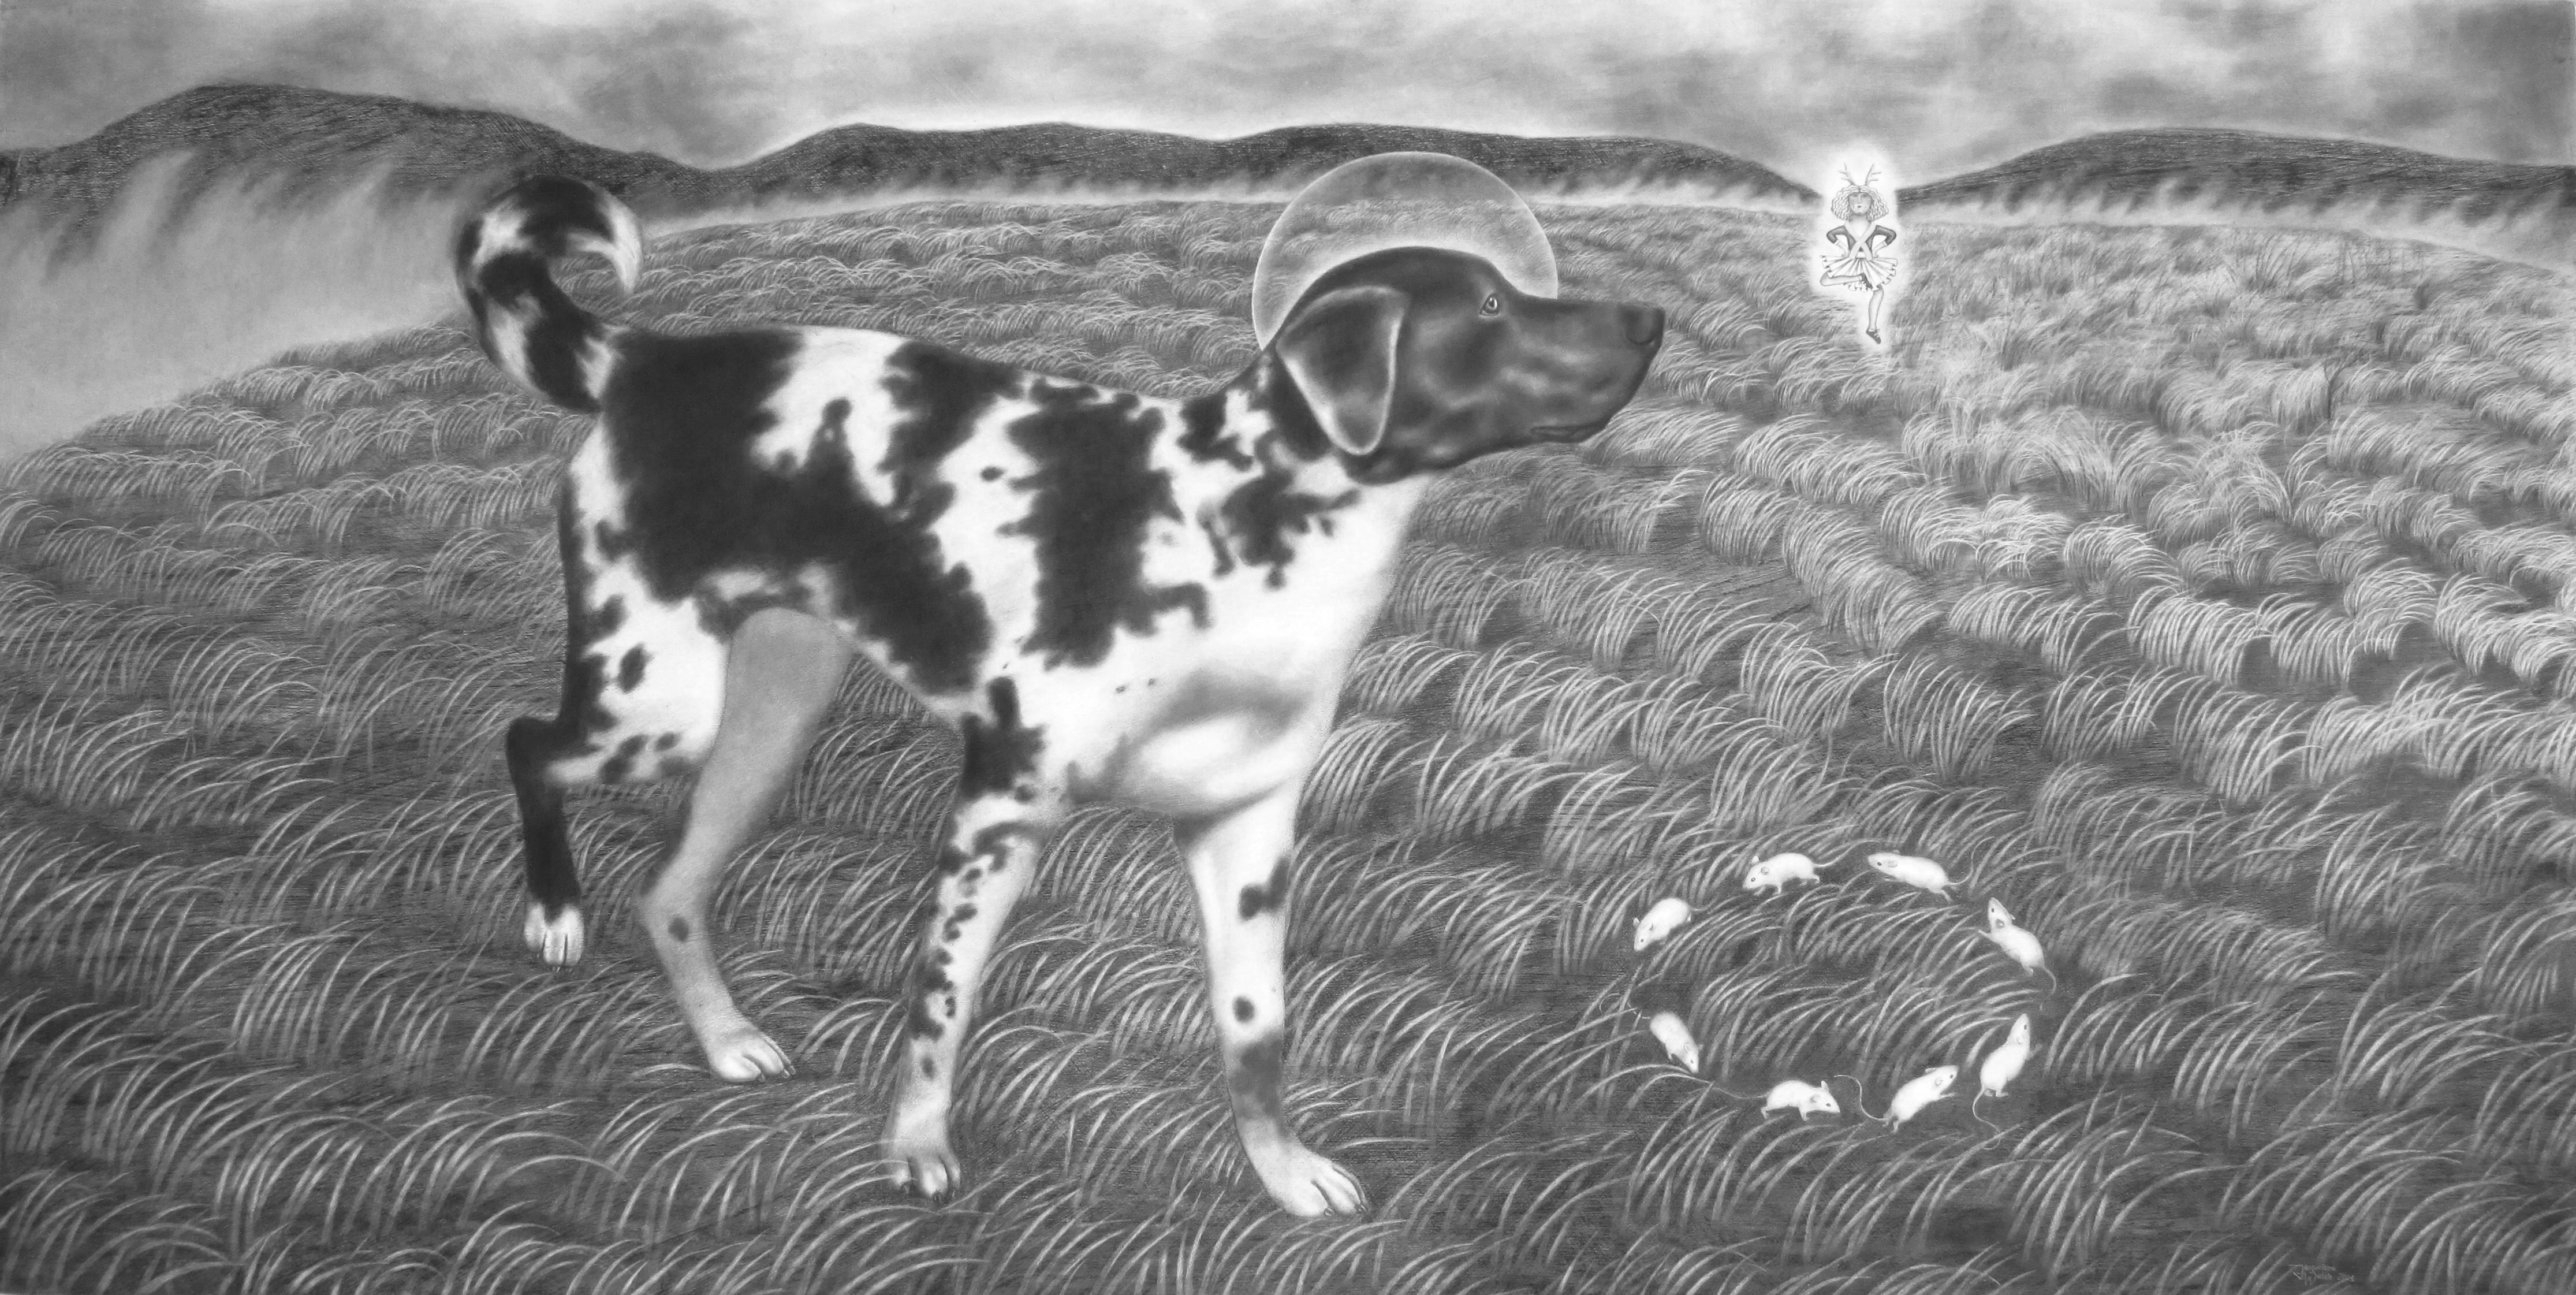 2014 The Scent of Change - Cancer Detection (New Work of Dogs series) - charcoal on gessoed paper - 2014